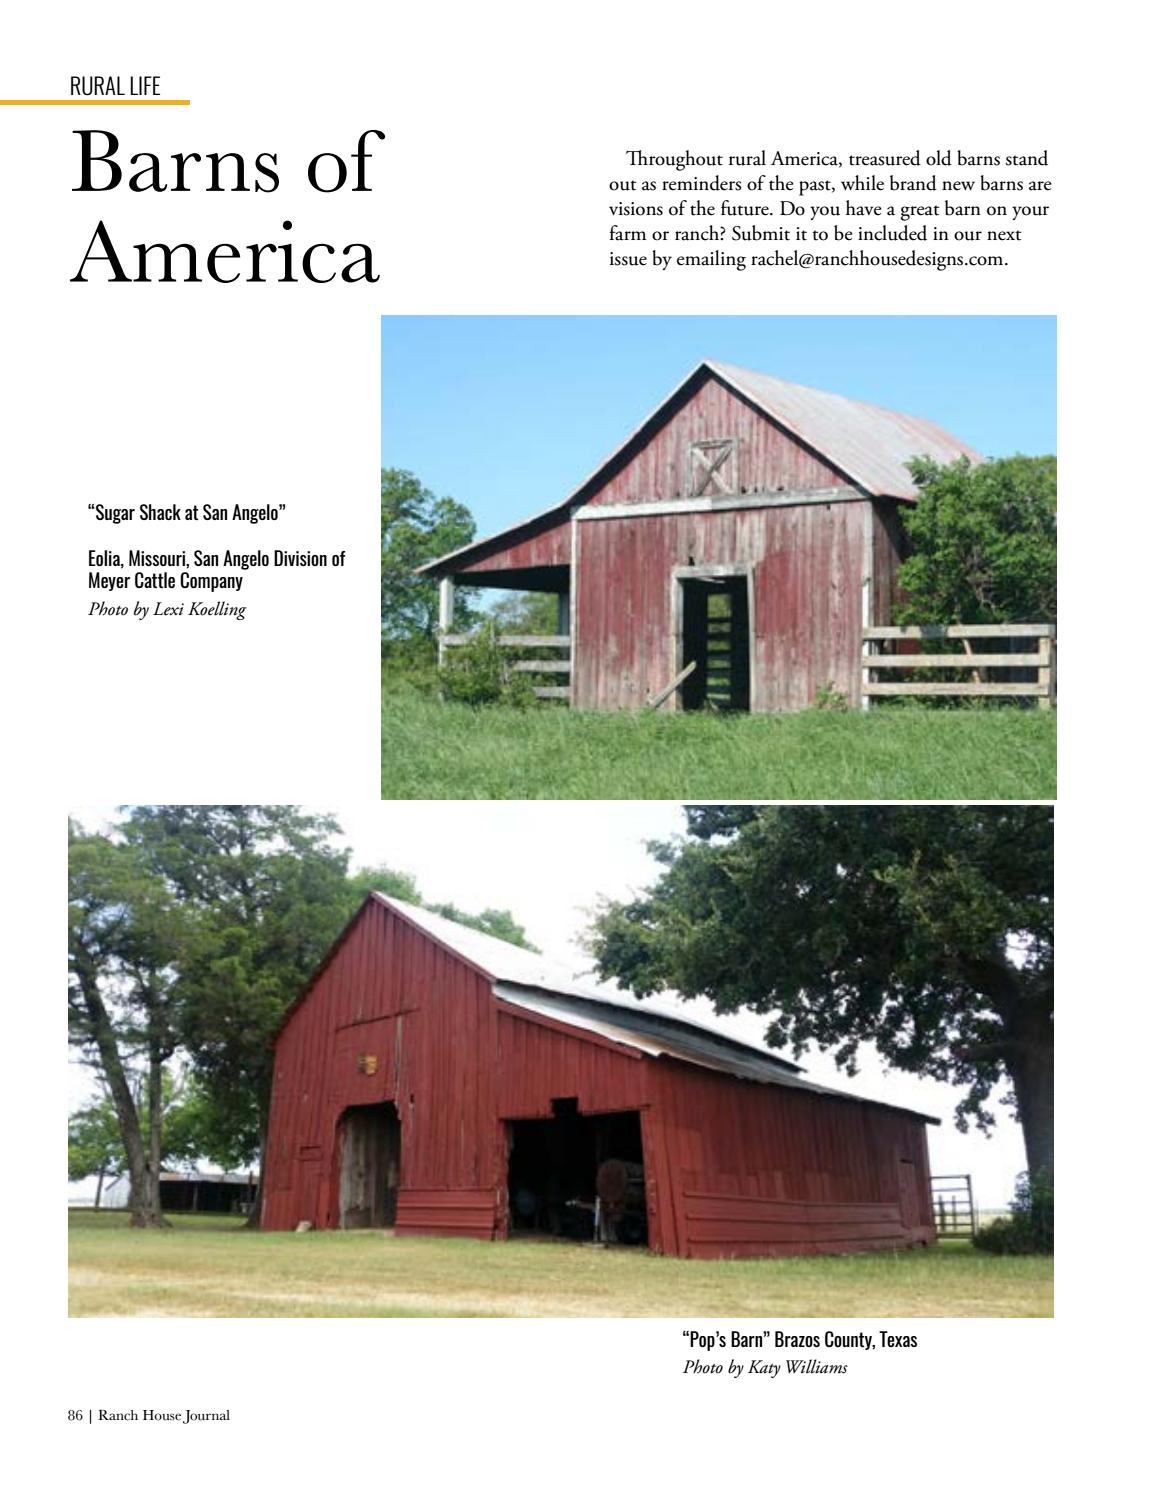 Summer 2017 Ranch House Journal by Ranch House Designs - issuu on old spanish colonial houses, historic texas ranches houses, old texas barns, old mansion houses, old ranch homes, old texas farmhouses, old texas roads, old texas books, old texas ranches, old texas brick, old texas cemeteries, old texas trees, old texas christmas, old texas cars, old texas motels, old texas saloons, west texas old houses, old texas farm, old houses in texas, old texas homes,